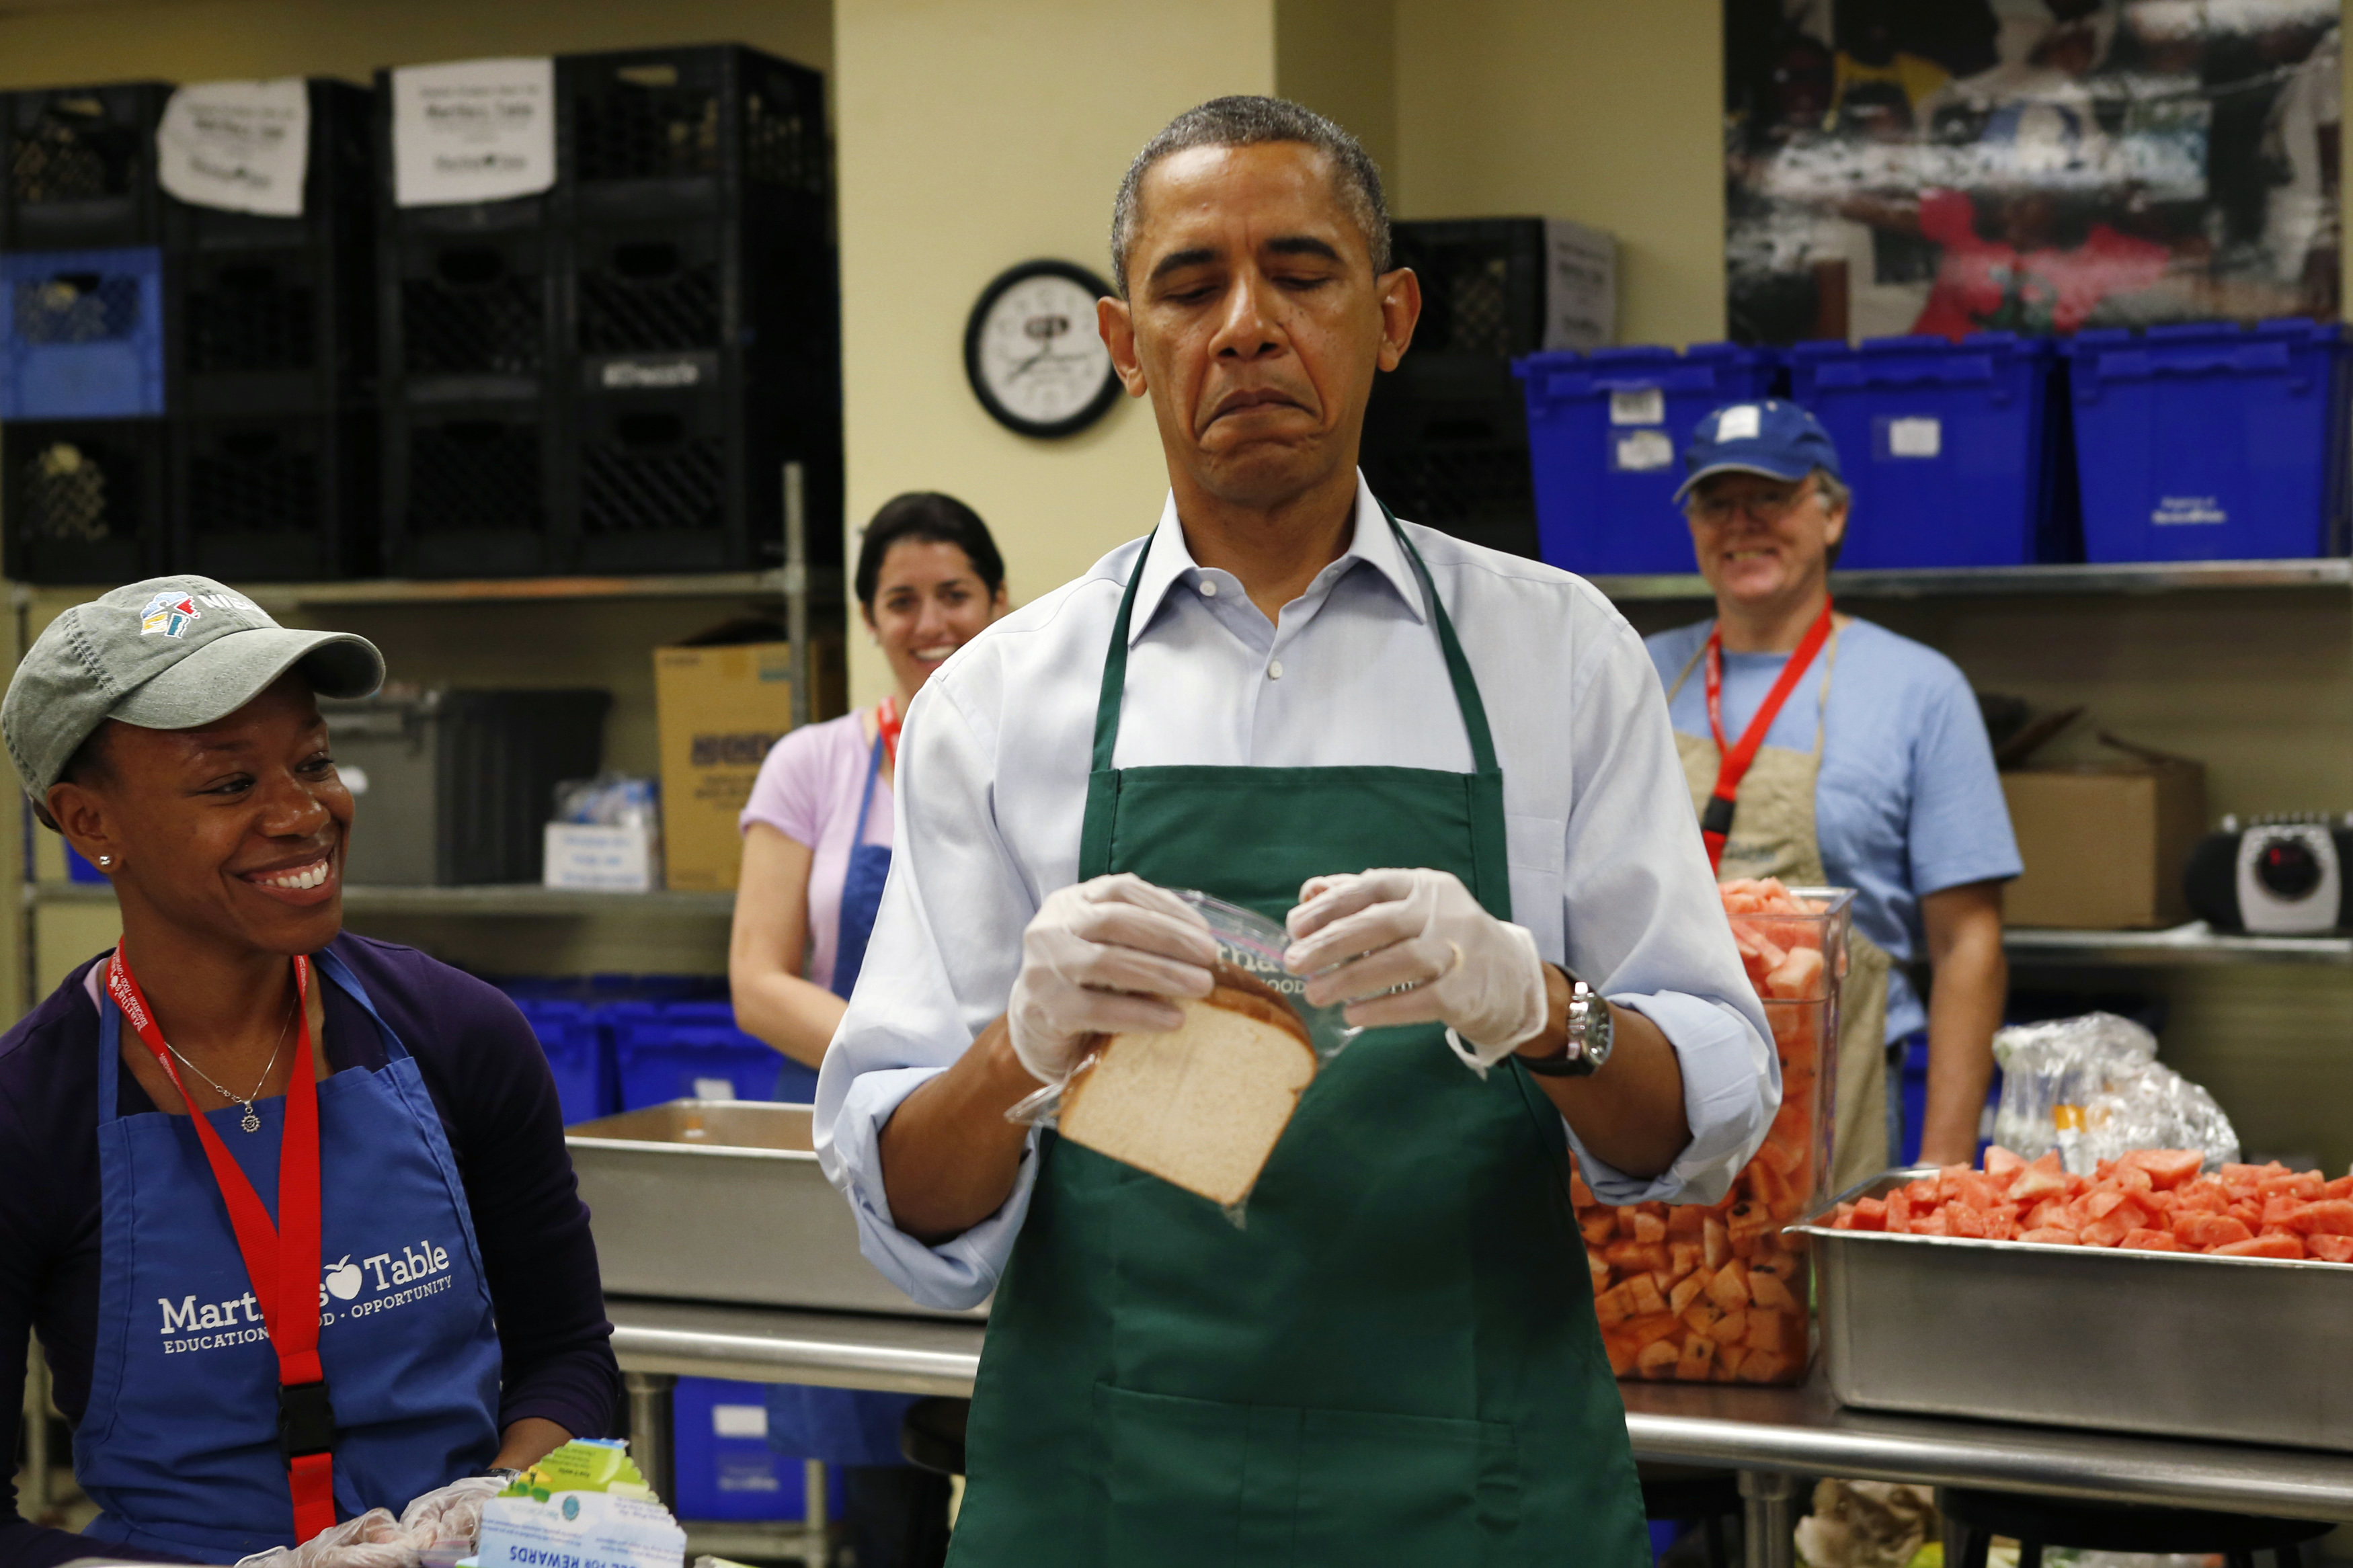 U.S. President Barack Obama during a visit to Martha's Table, a kitchen that provides meals for the needy, in Washington October 14, 2013.